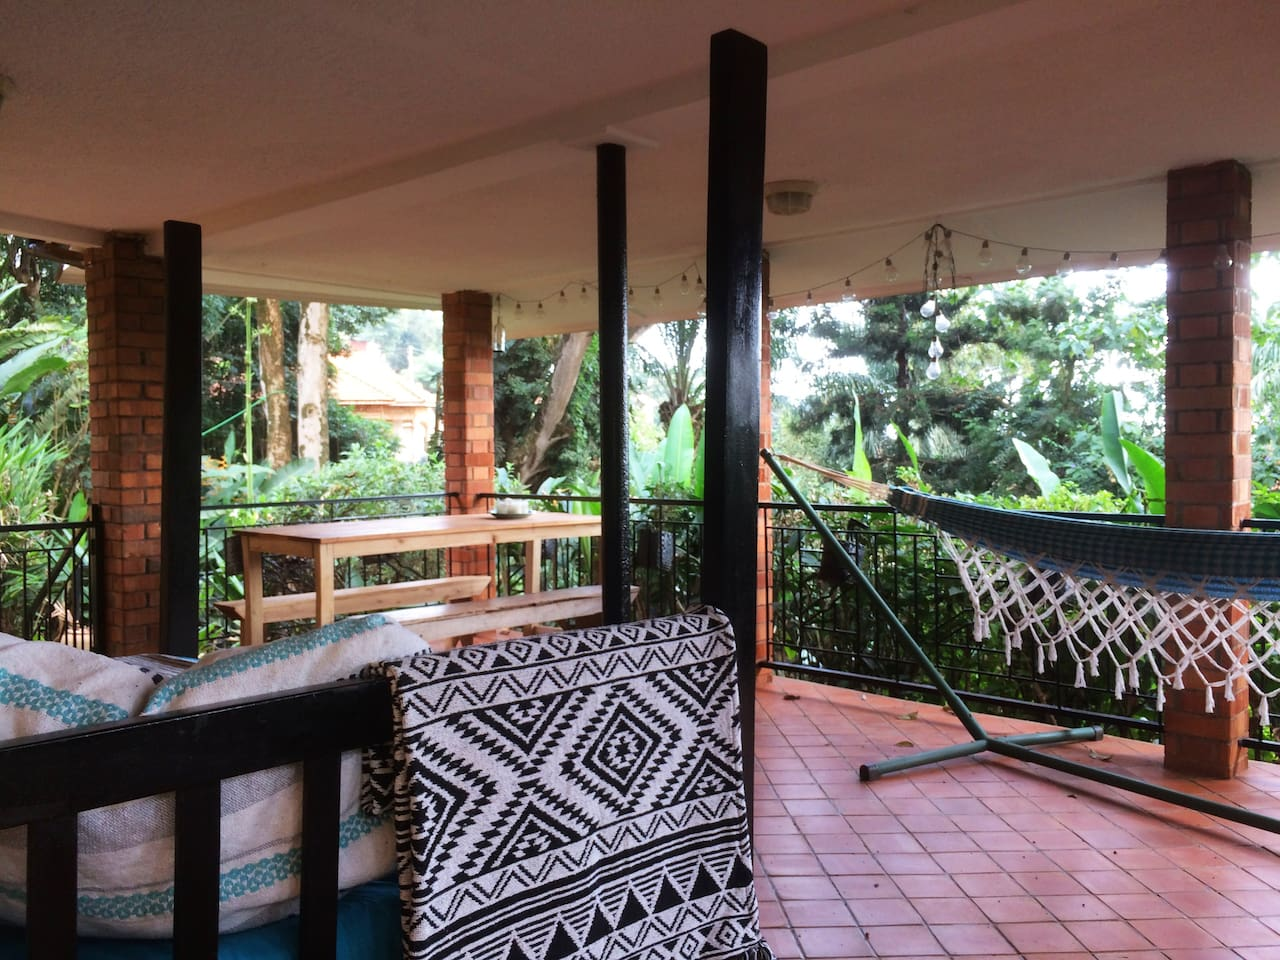 A cool breeze, green garden and wonderful view from our terrace